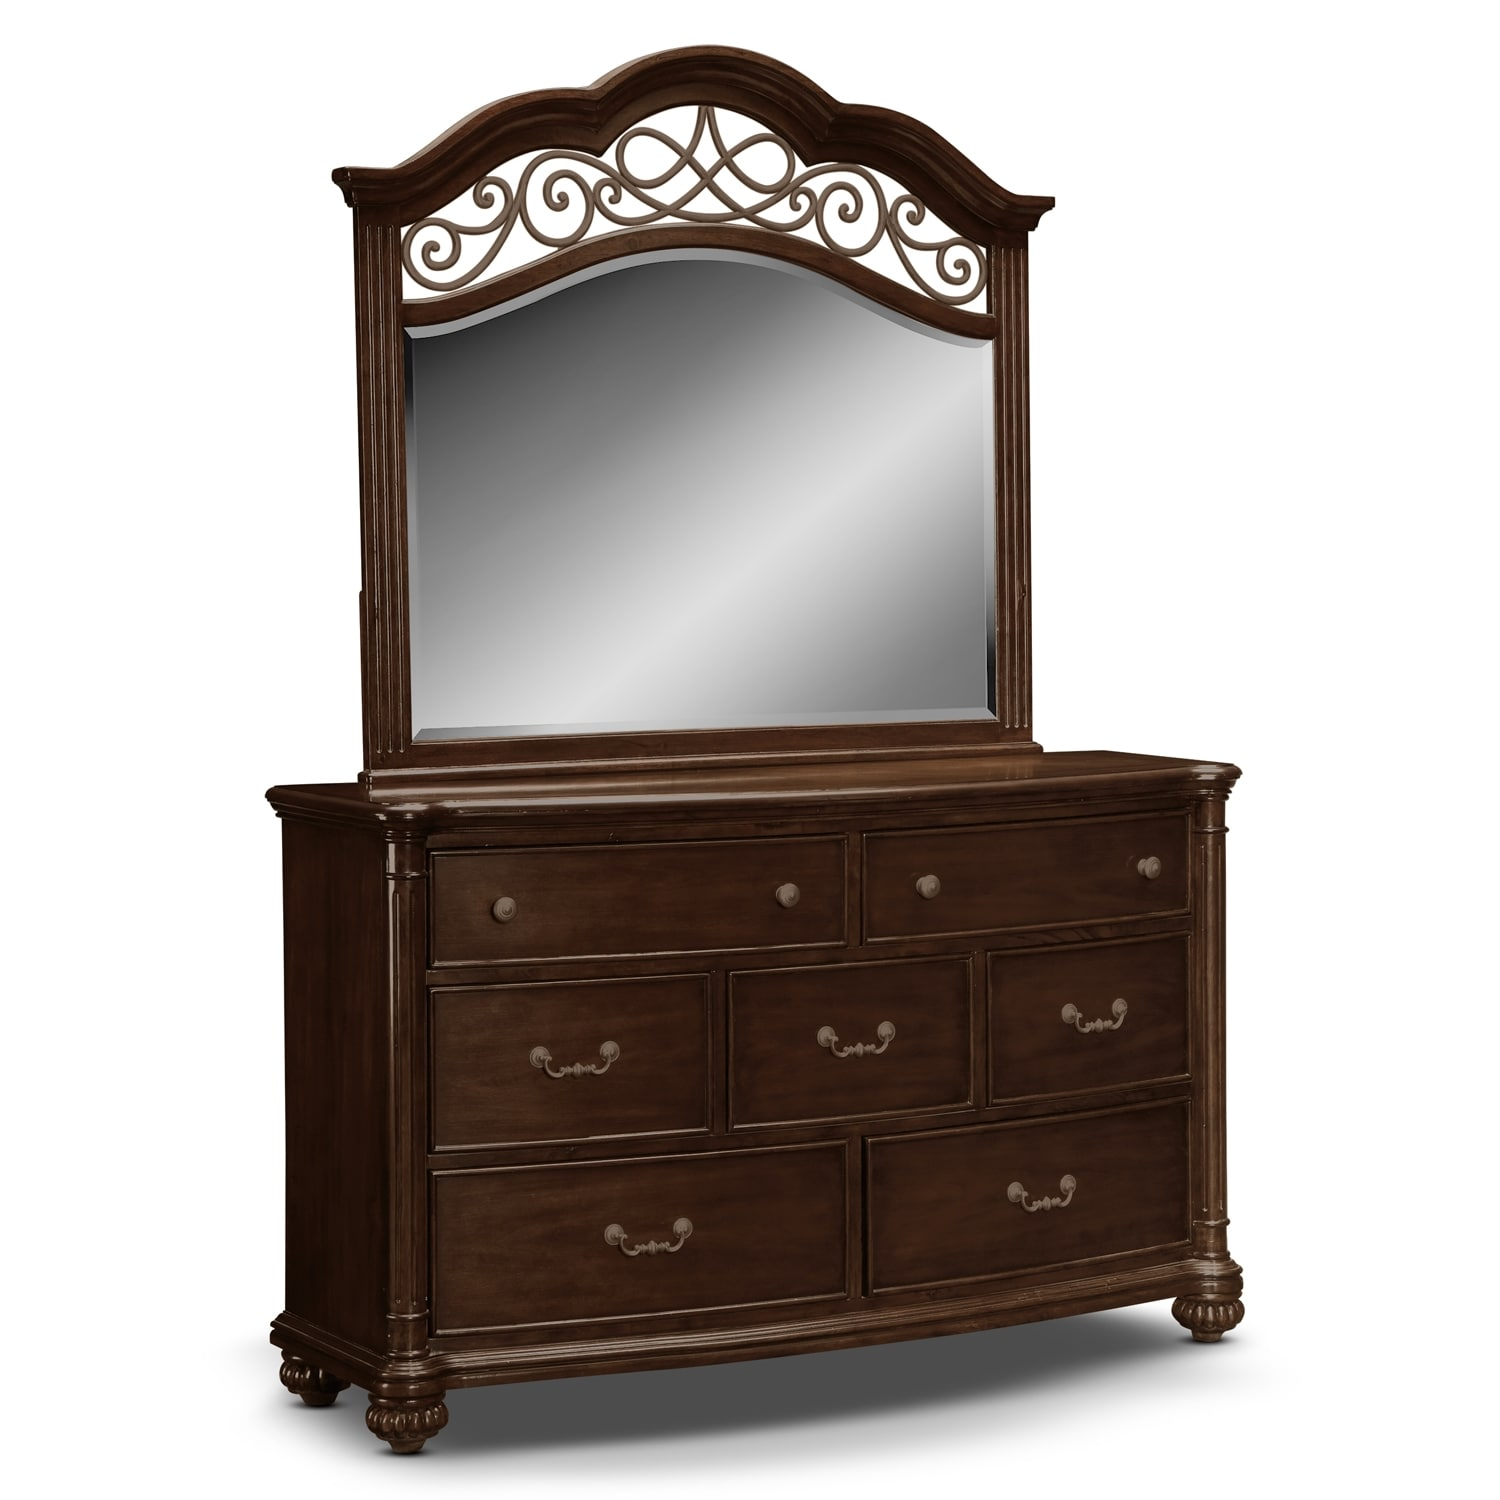 Dimora Bedroom Set Shop Dressers Value City Furniture